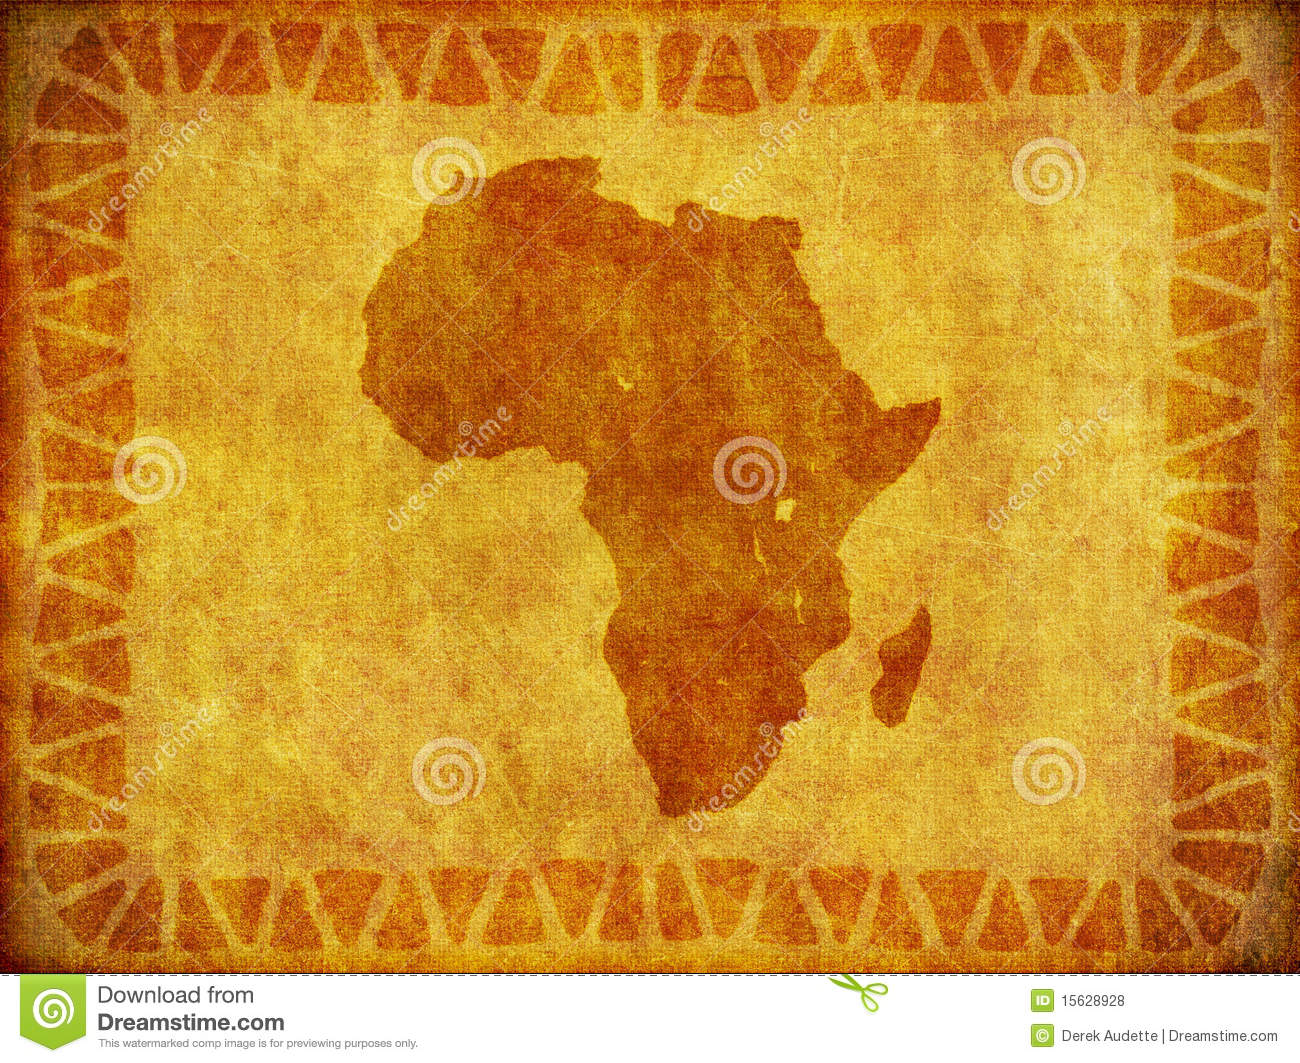 African Continent Grunge Background Stock Illustration